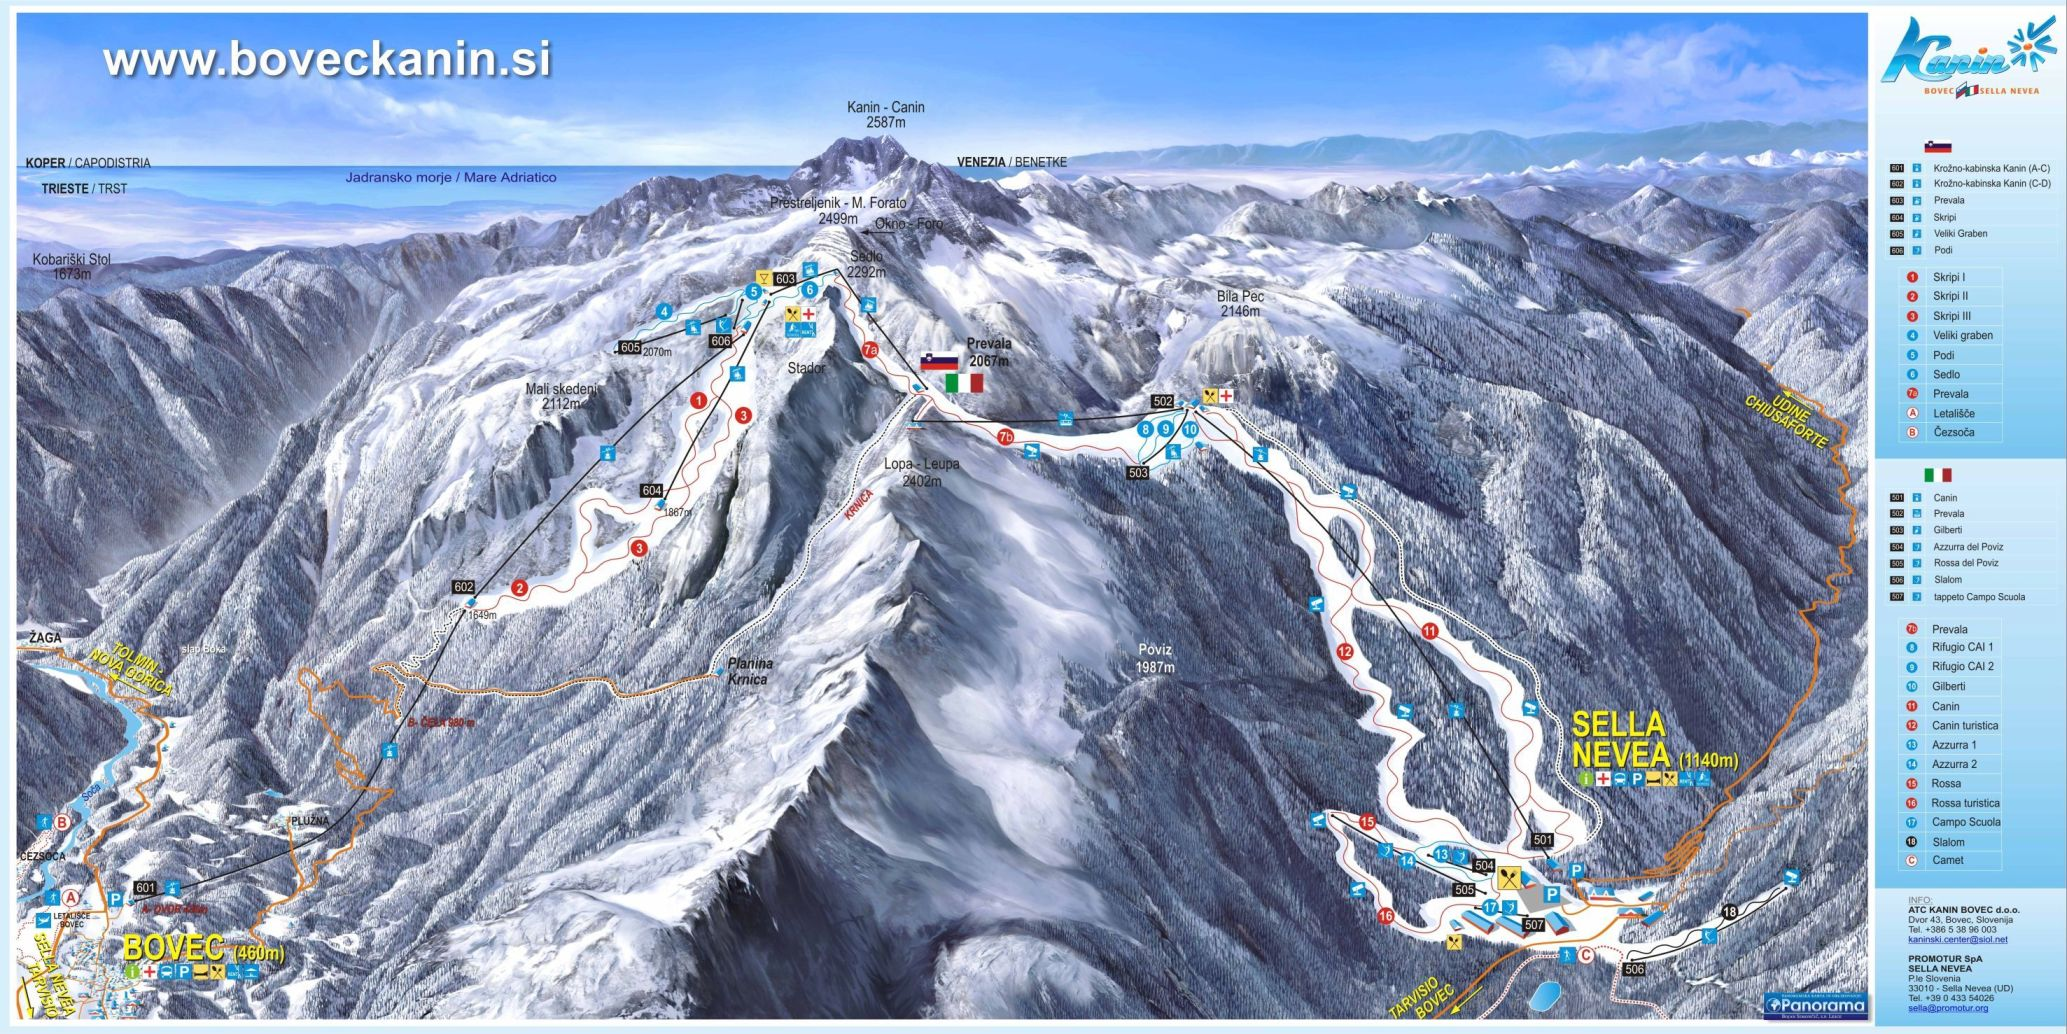 Bovec - Kanin Piste / Trail Map